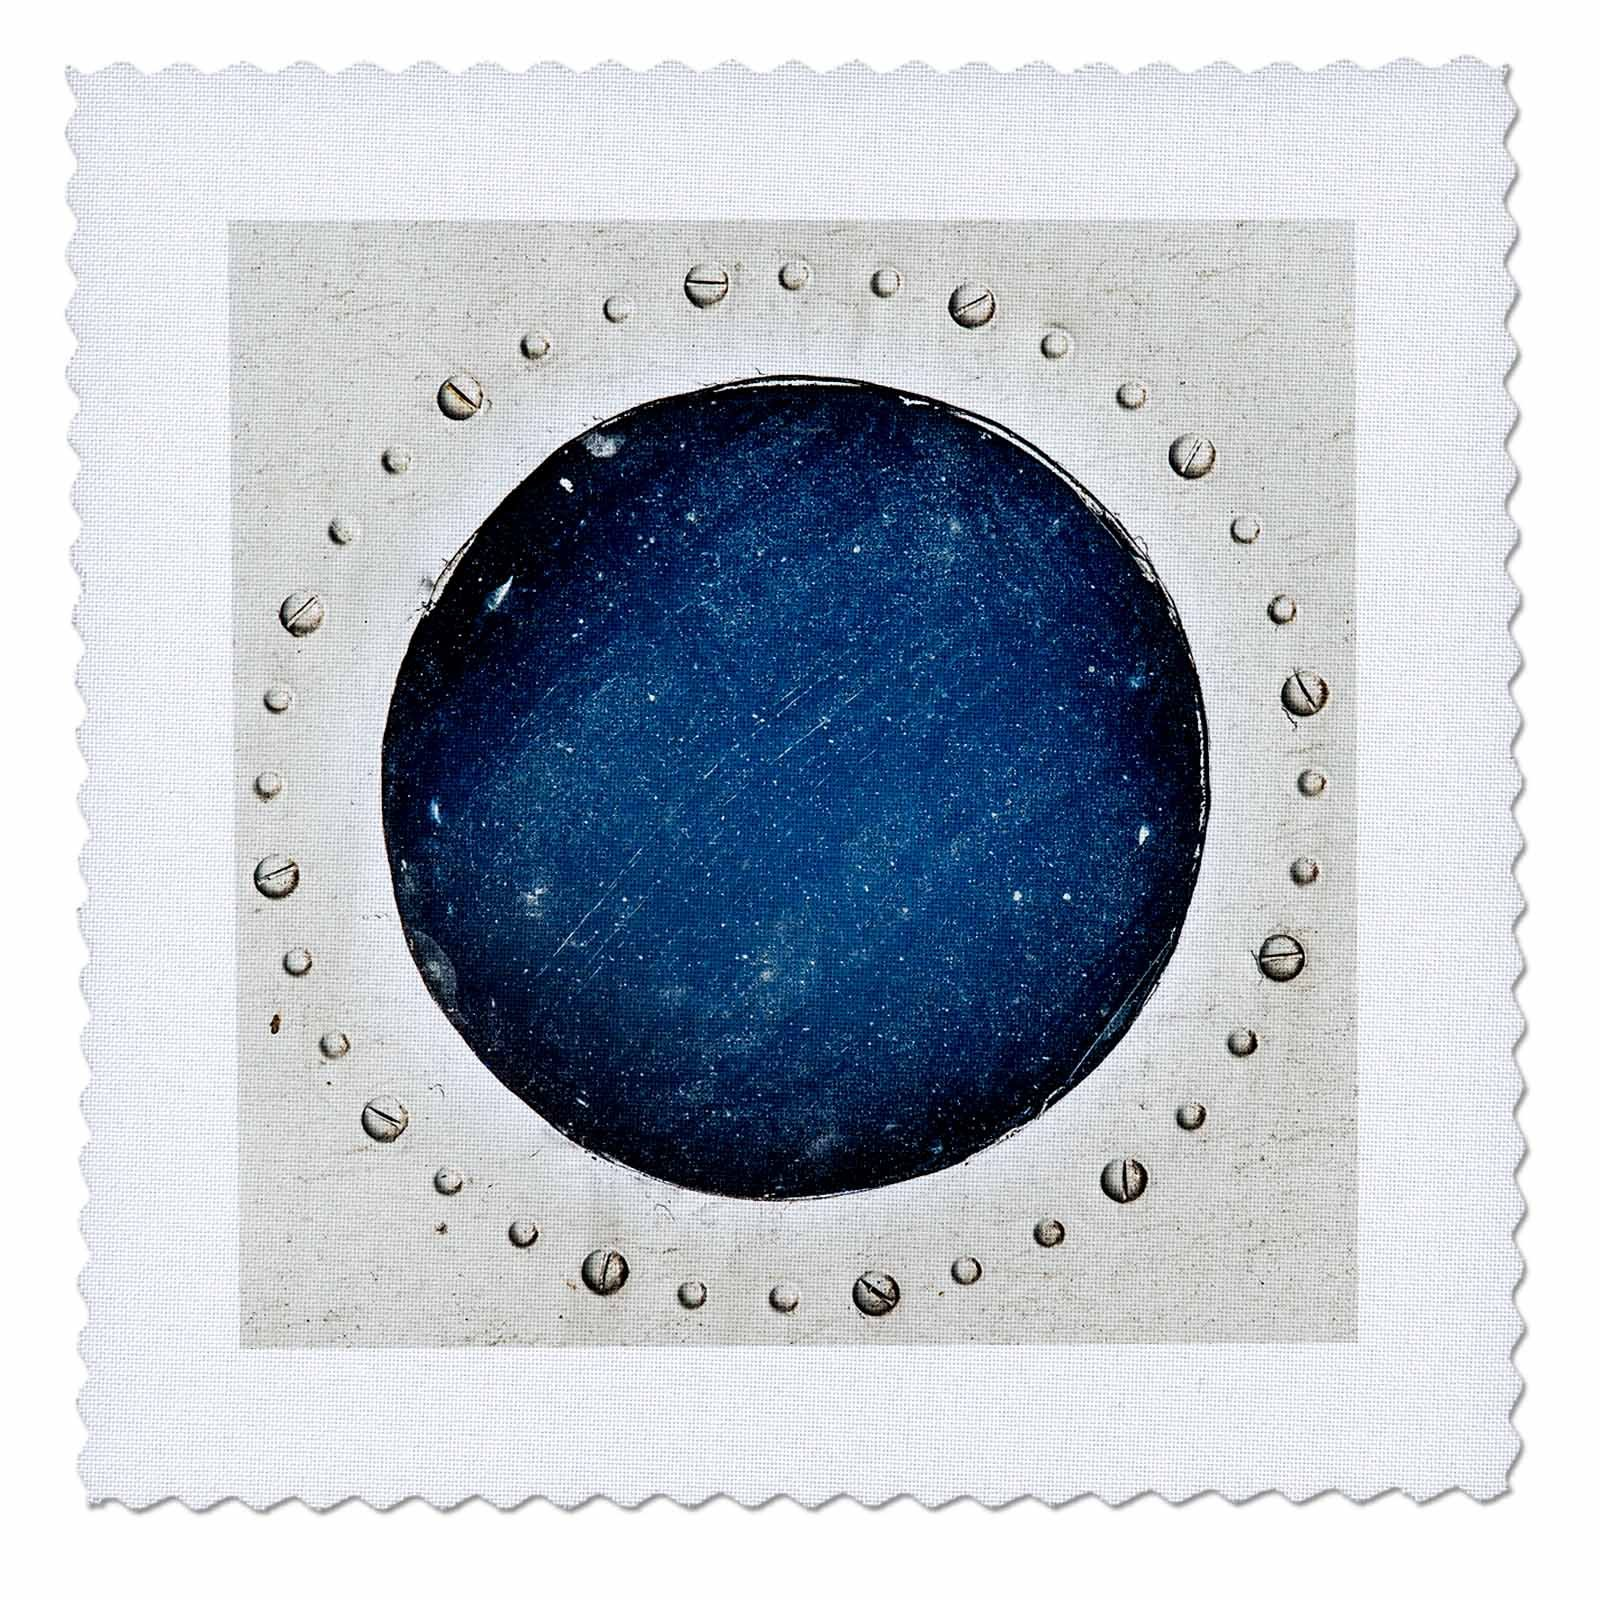 3dRose Alexis Photography - Abstracts of Aviation - Grunge round window of a vintage airplane. Reflection of the Universe - 25x25 inch quilt square (qs_272024_10)